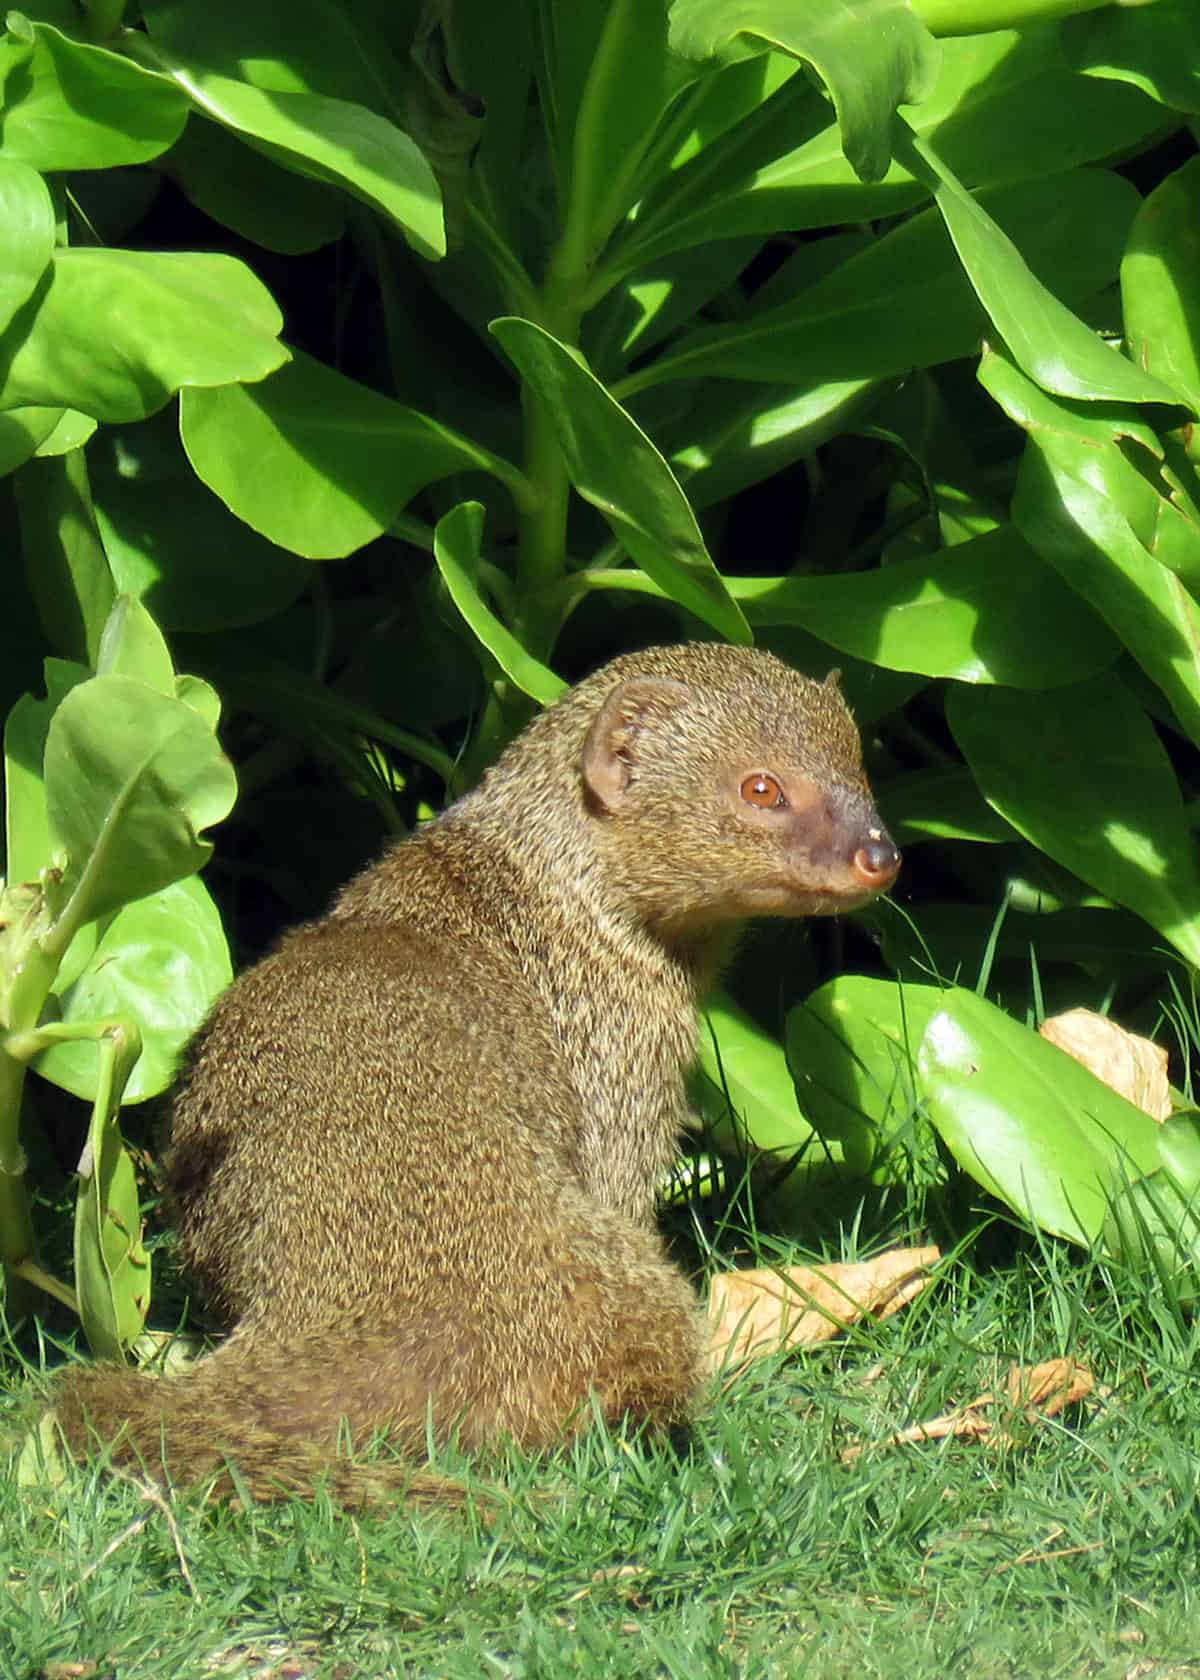 Is a mongoose a rodent?